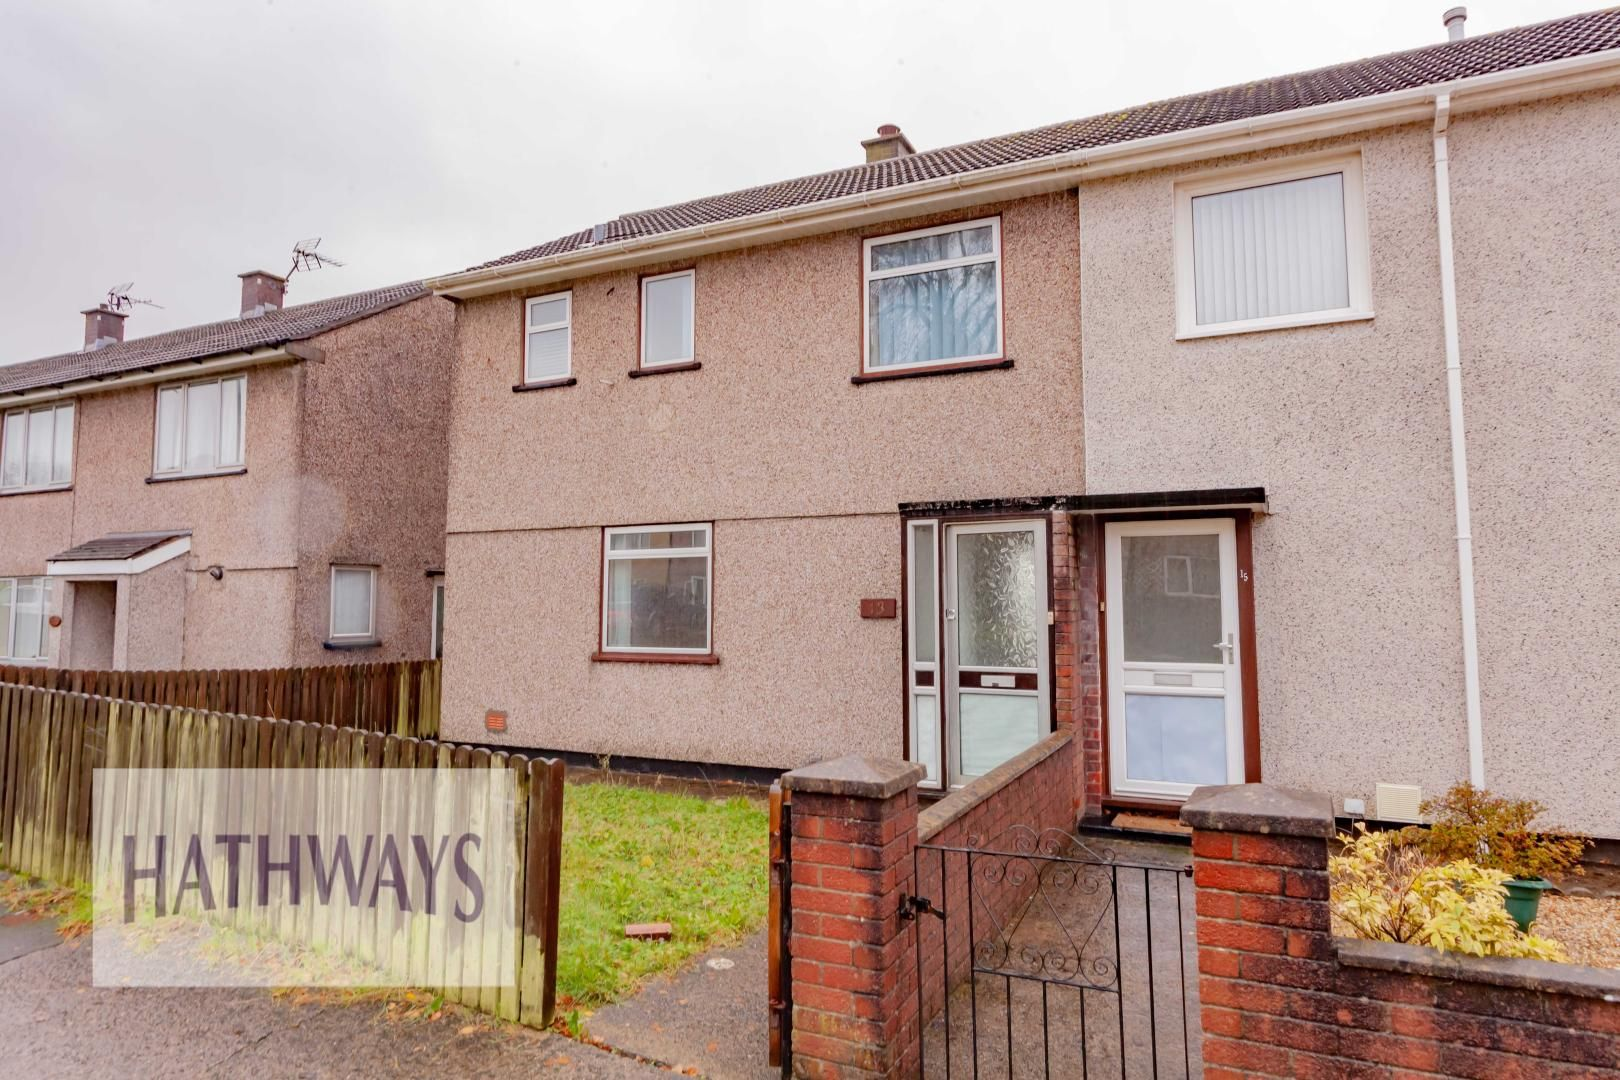 2 bed house for sale in Wordsworth Close - Property Image 1